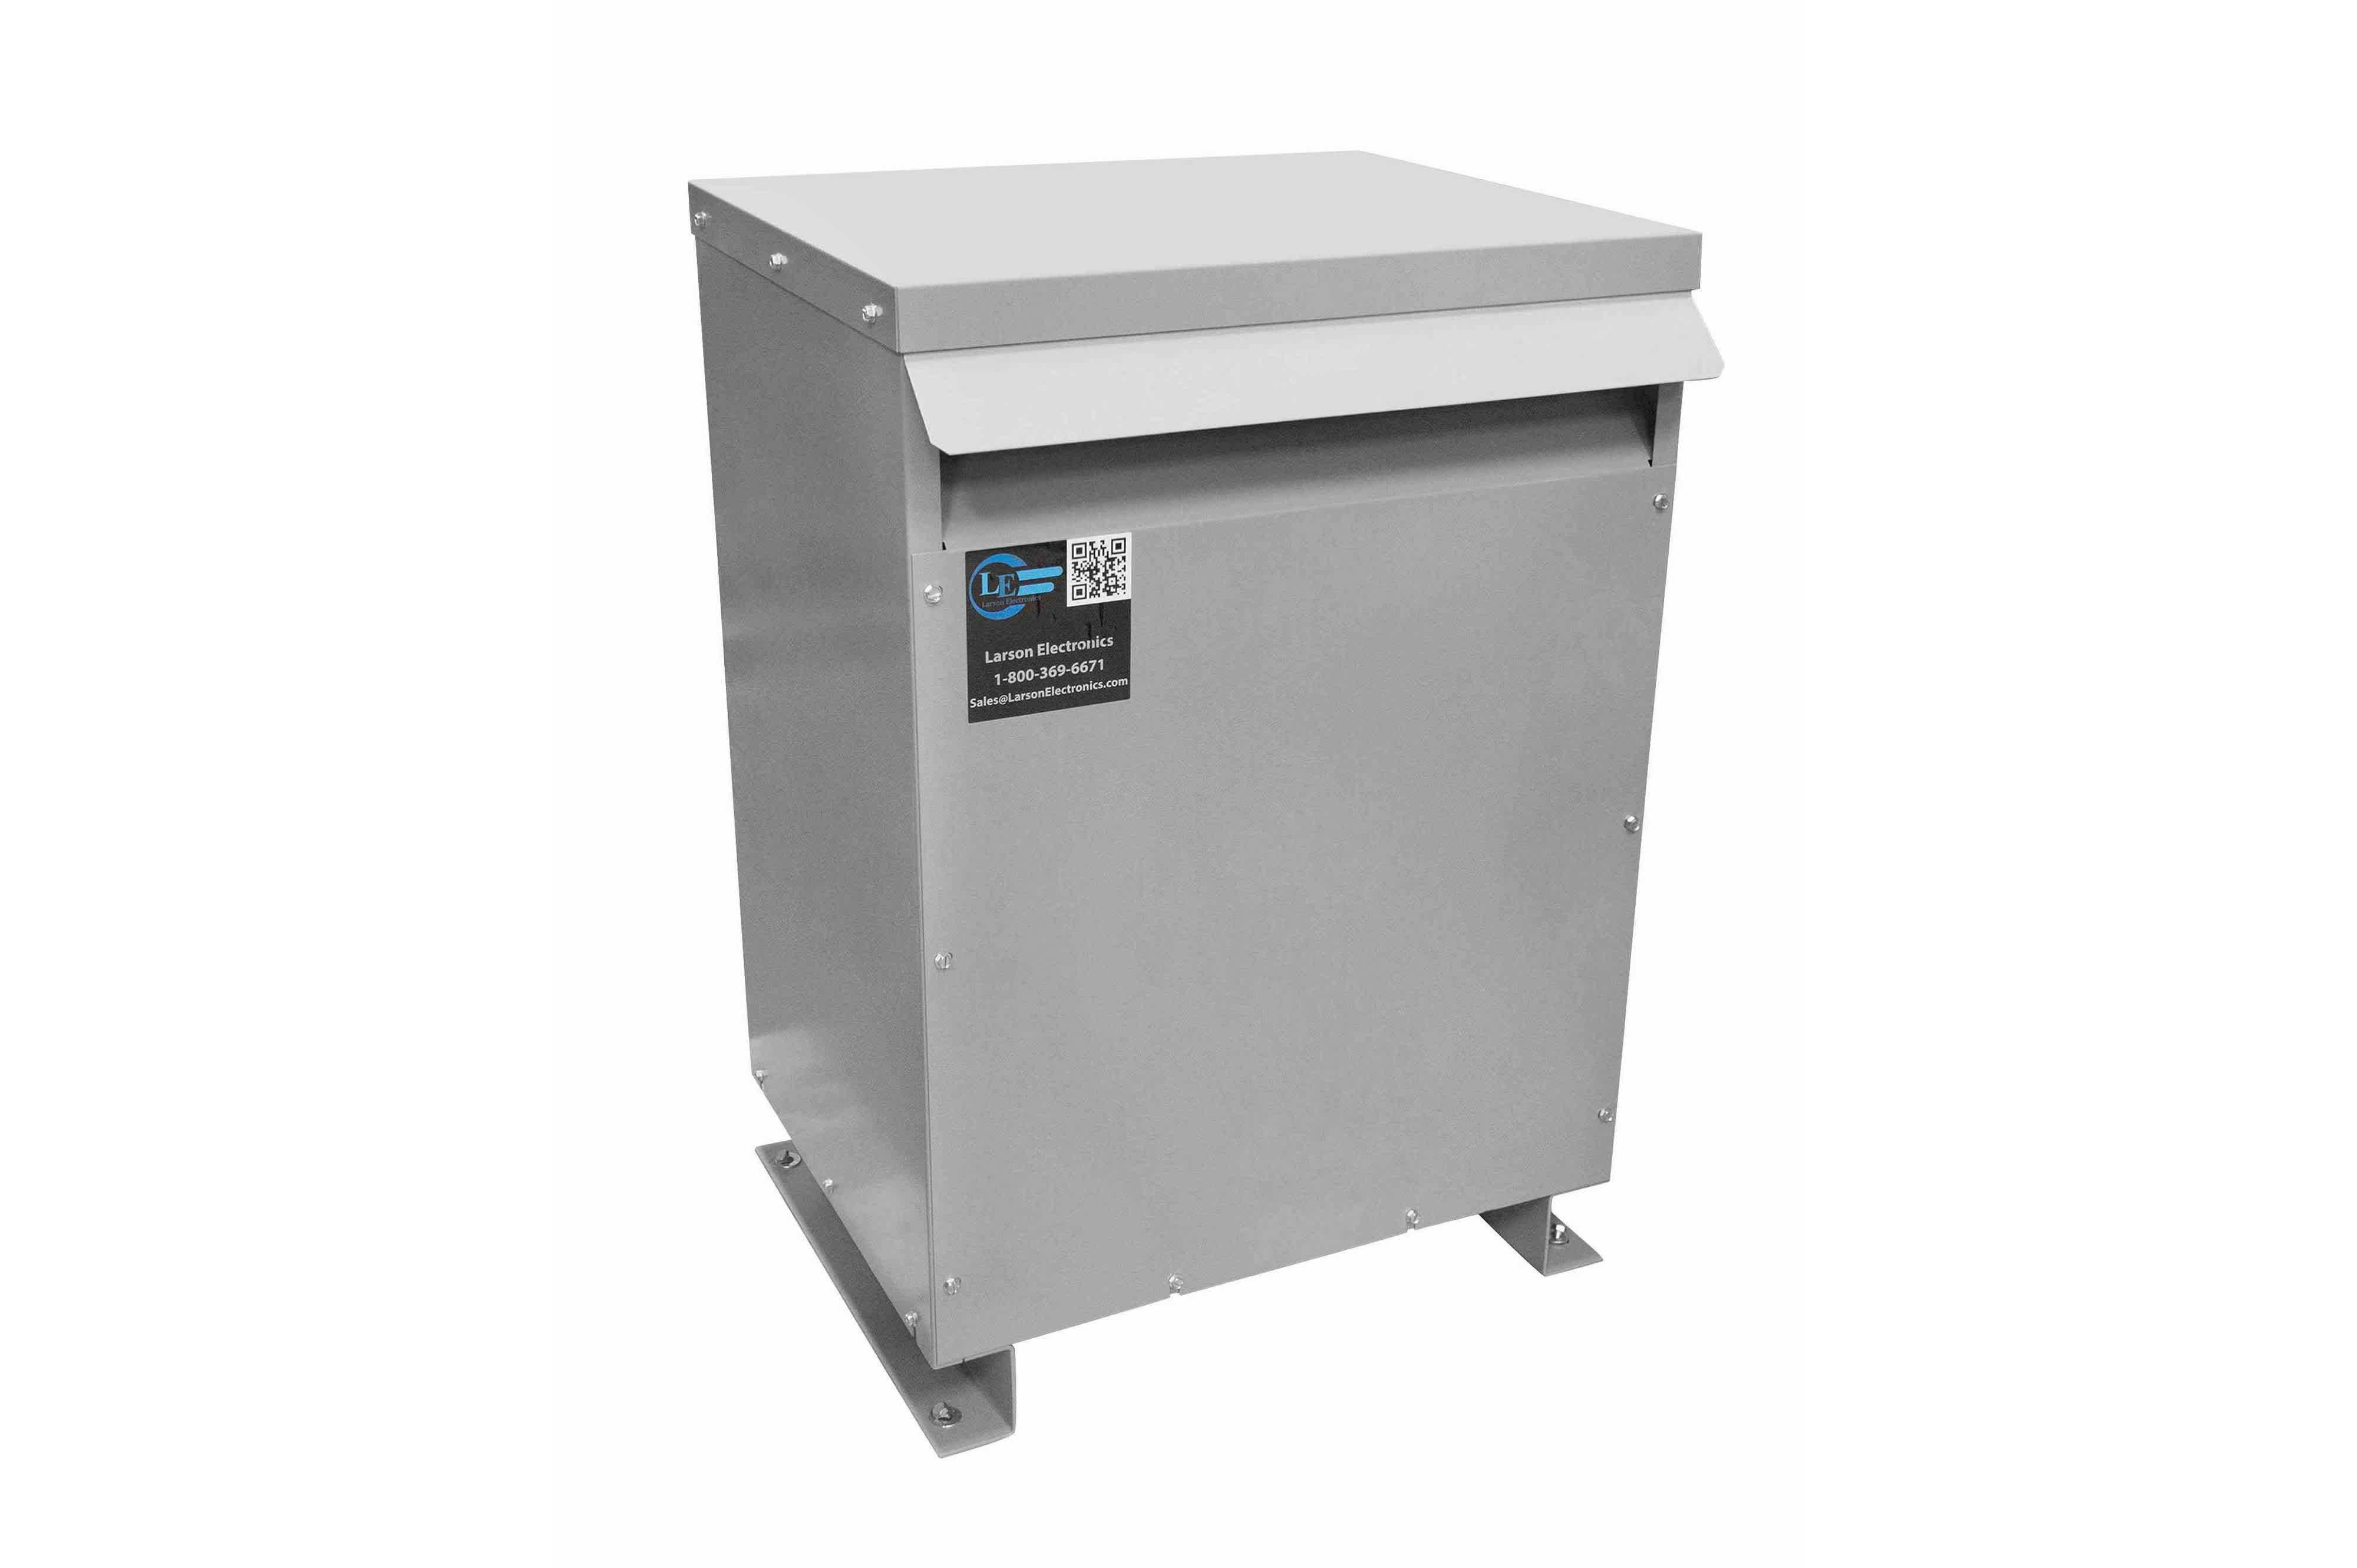 100 kVA 3PH Isolation Transformer, 480V Wye Primary, 415Y/240 Wye-N Secondary, N3R, Ventilated, 60 Hz